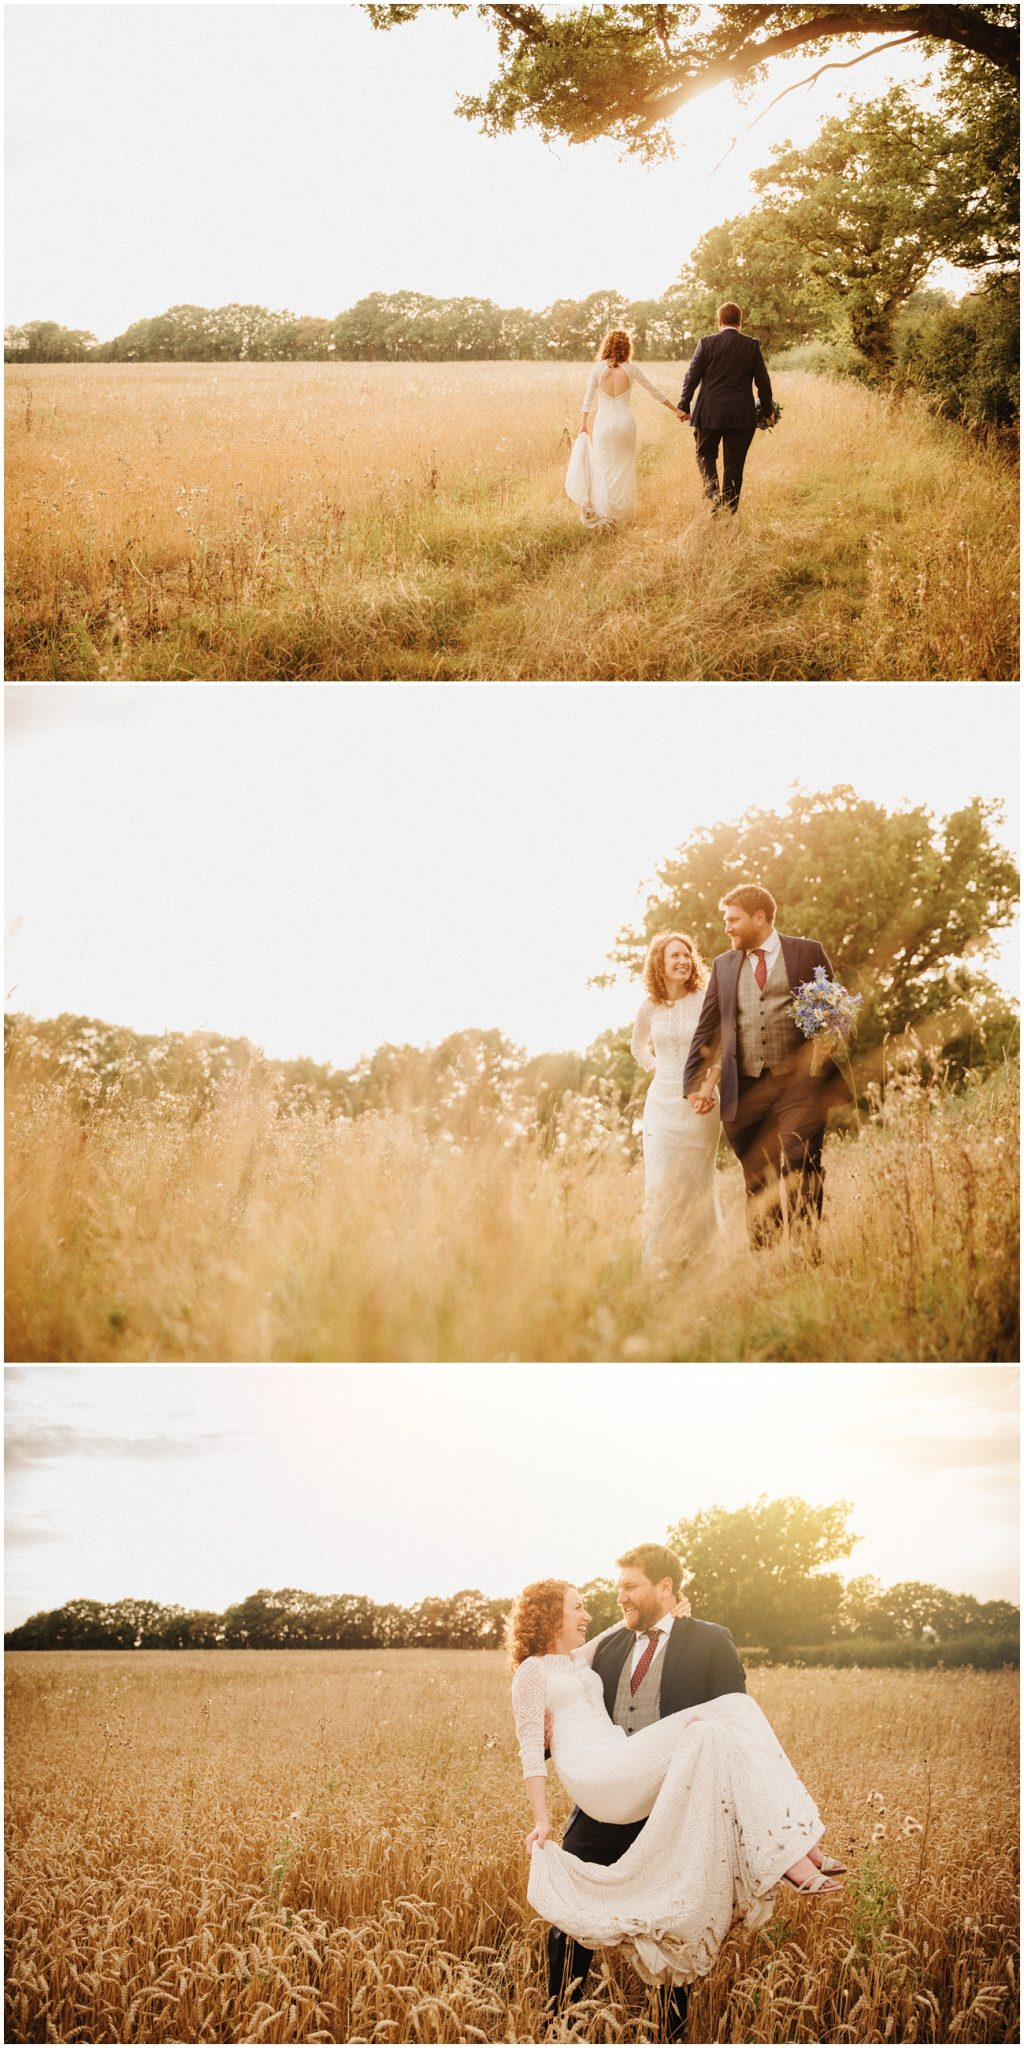 Sunset shots of the bride and groom in a field